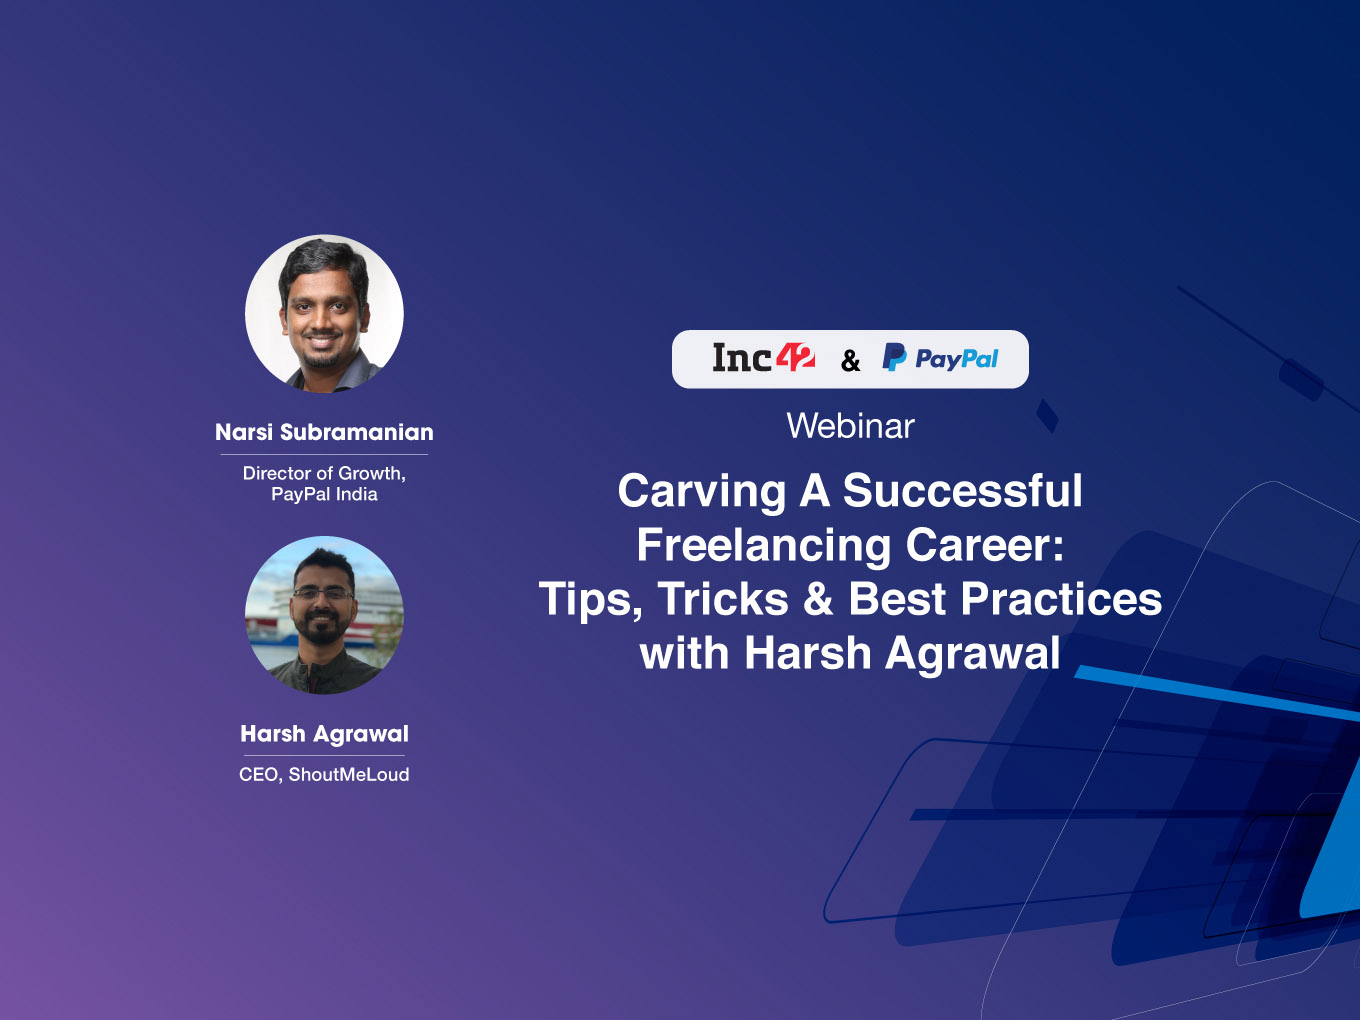 Carving A Successful Freelancing Career: Tips, Tricks & Best Practices with Harsh Agrawal—Inc42's Latest Webinar